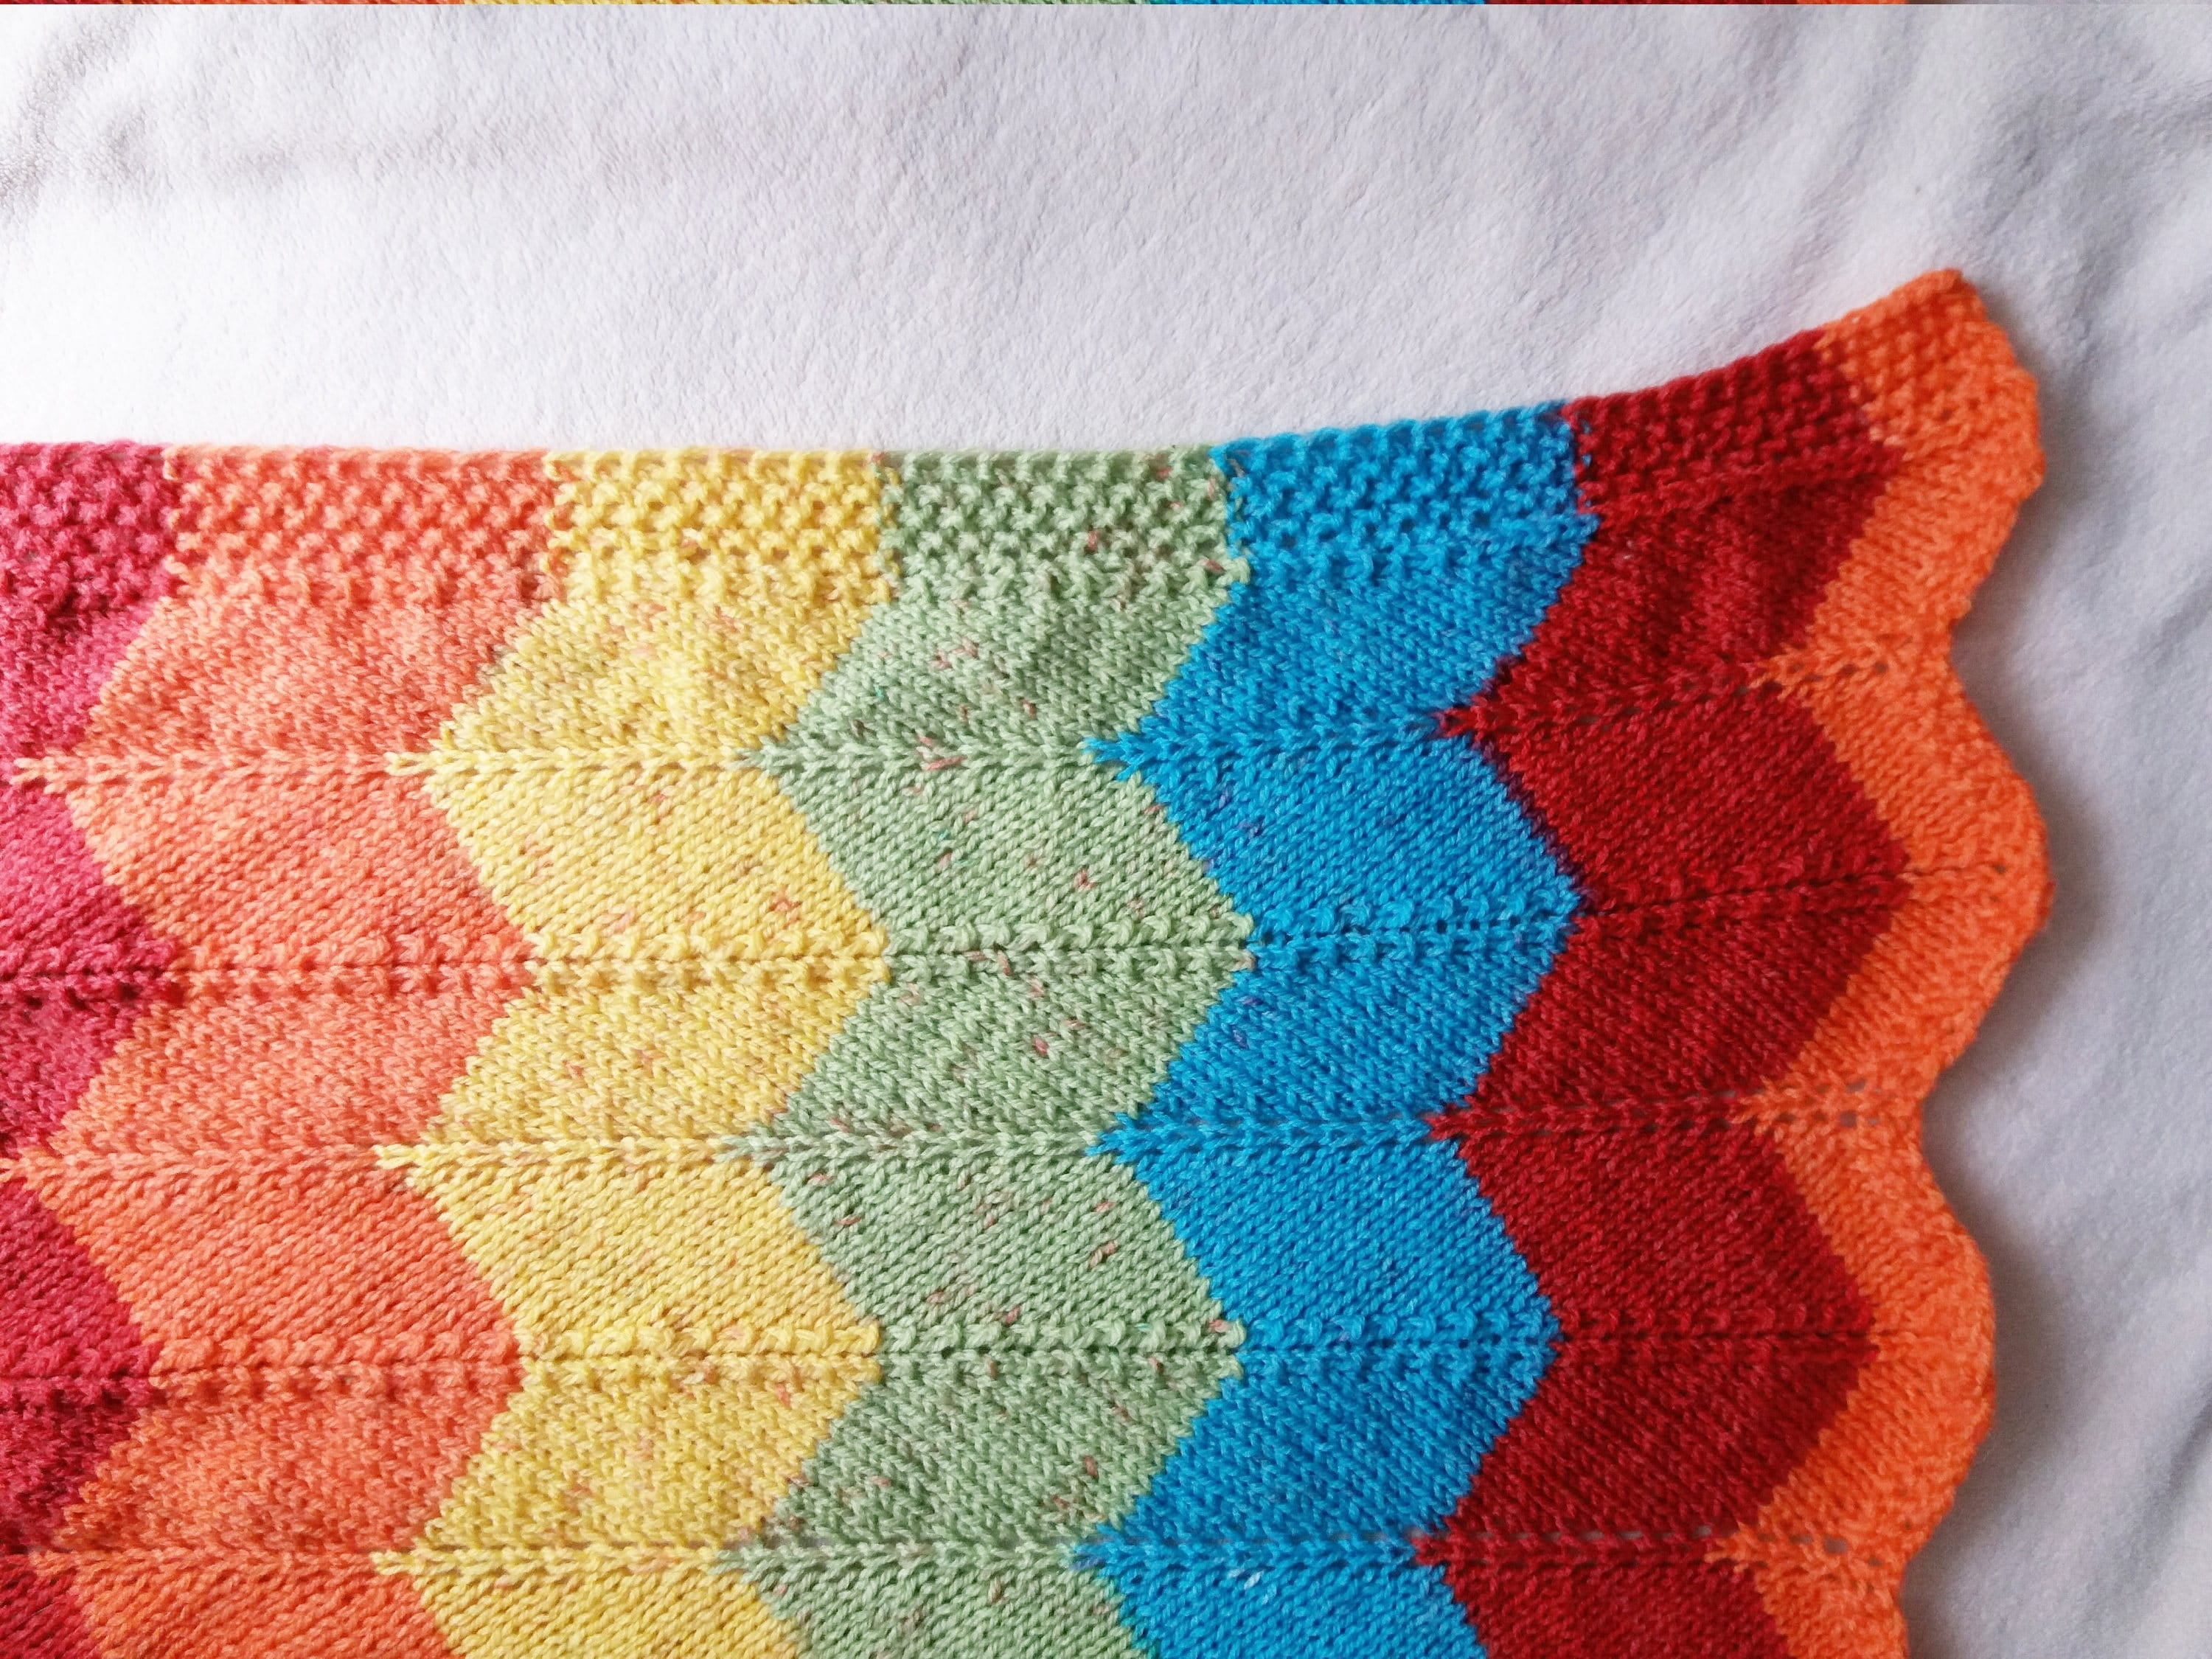 130 pdf chevron baby blanket knitting pattern easy baby blanket this is a digital file bankloansurffo Image collections